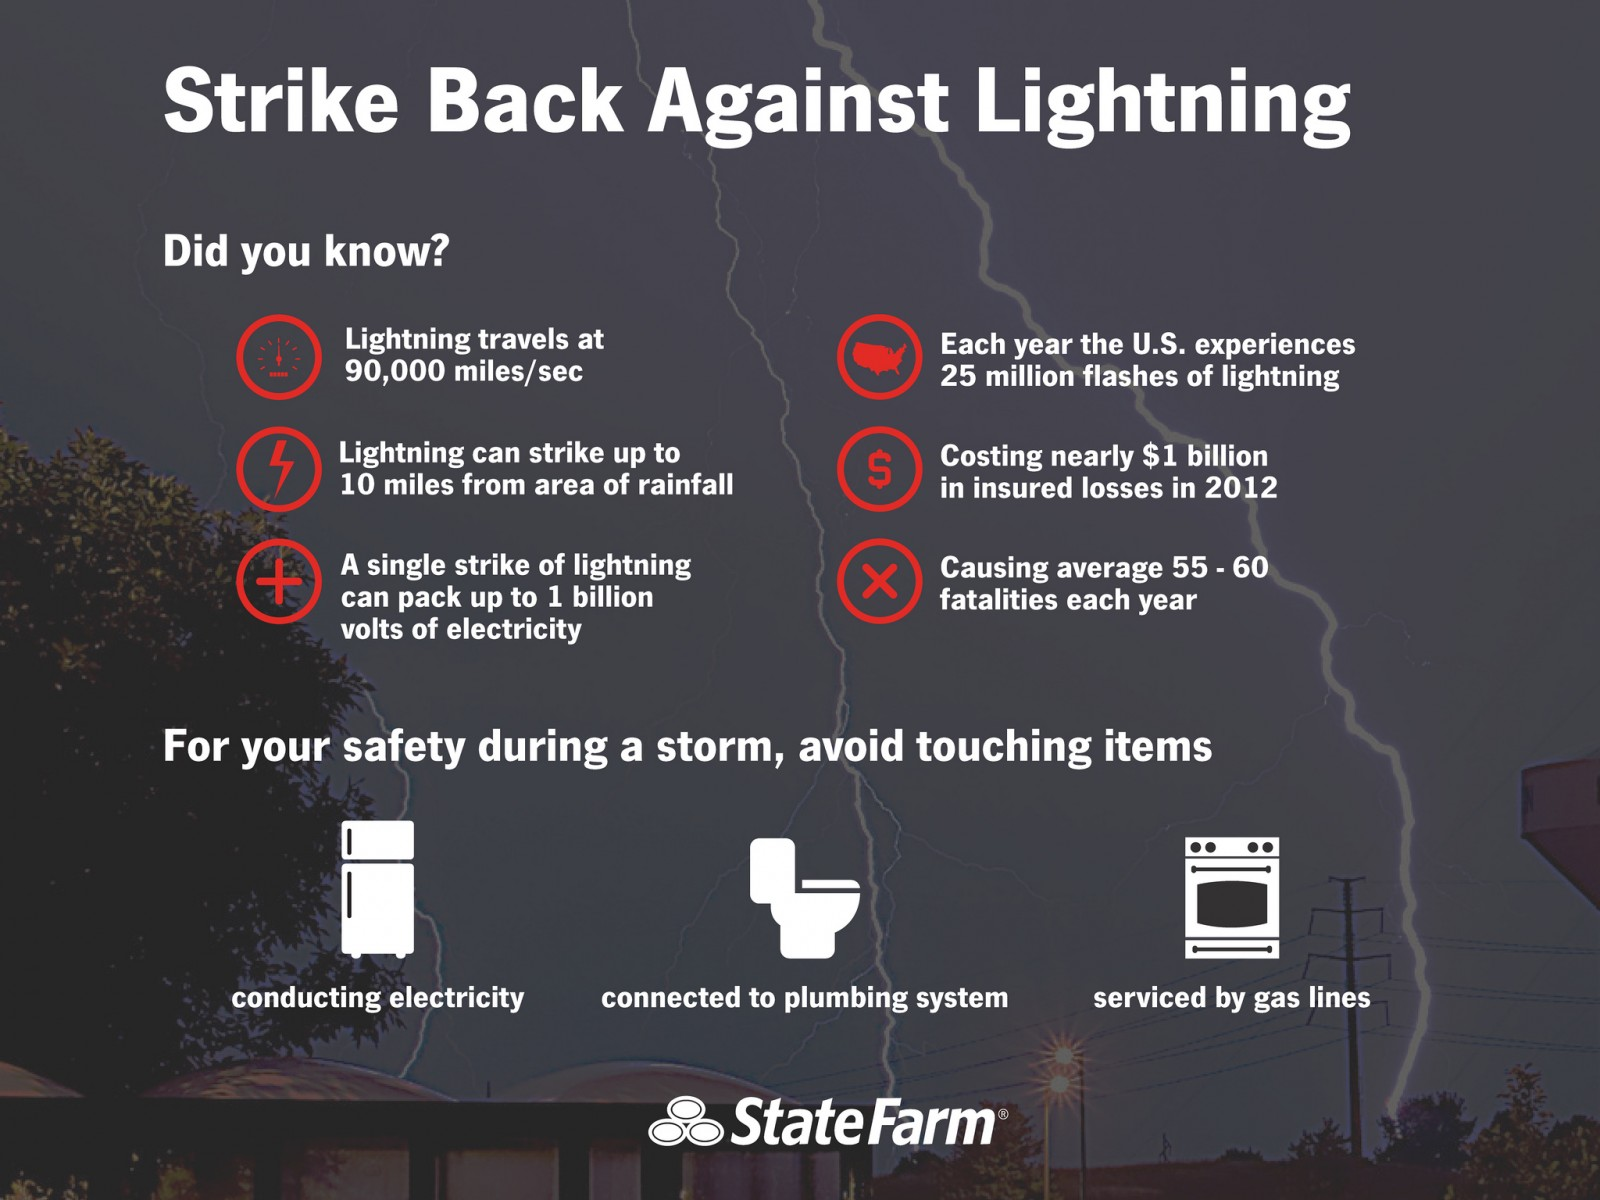 Strike Back Against Lightning